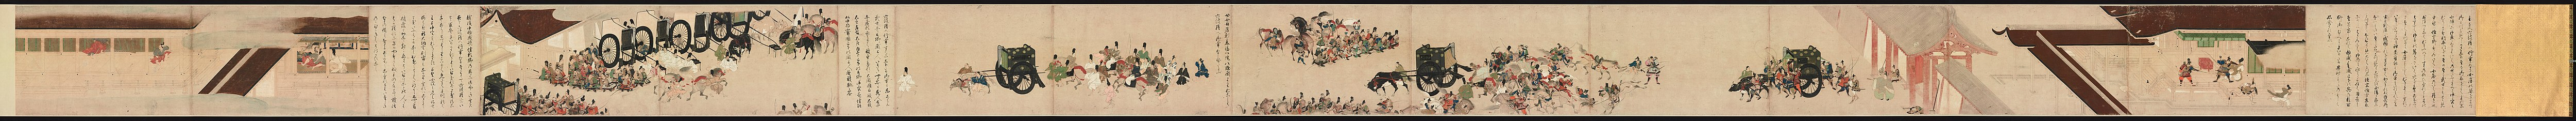 Illustrated Tale of the Heiji Civil War: Scroll of the Imperial Visit to Rokuhara